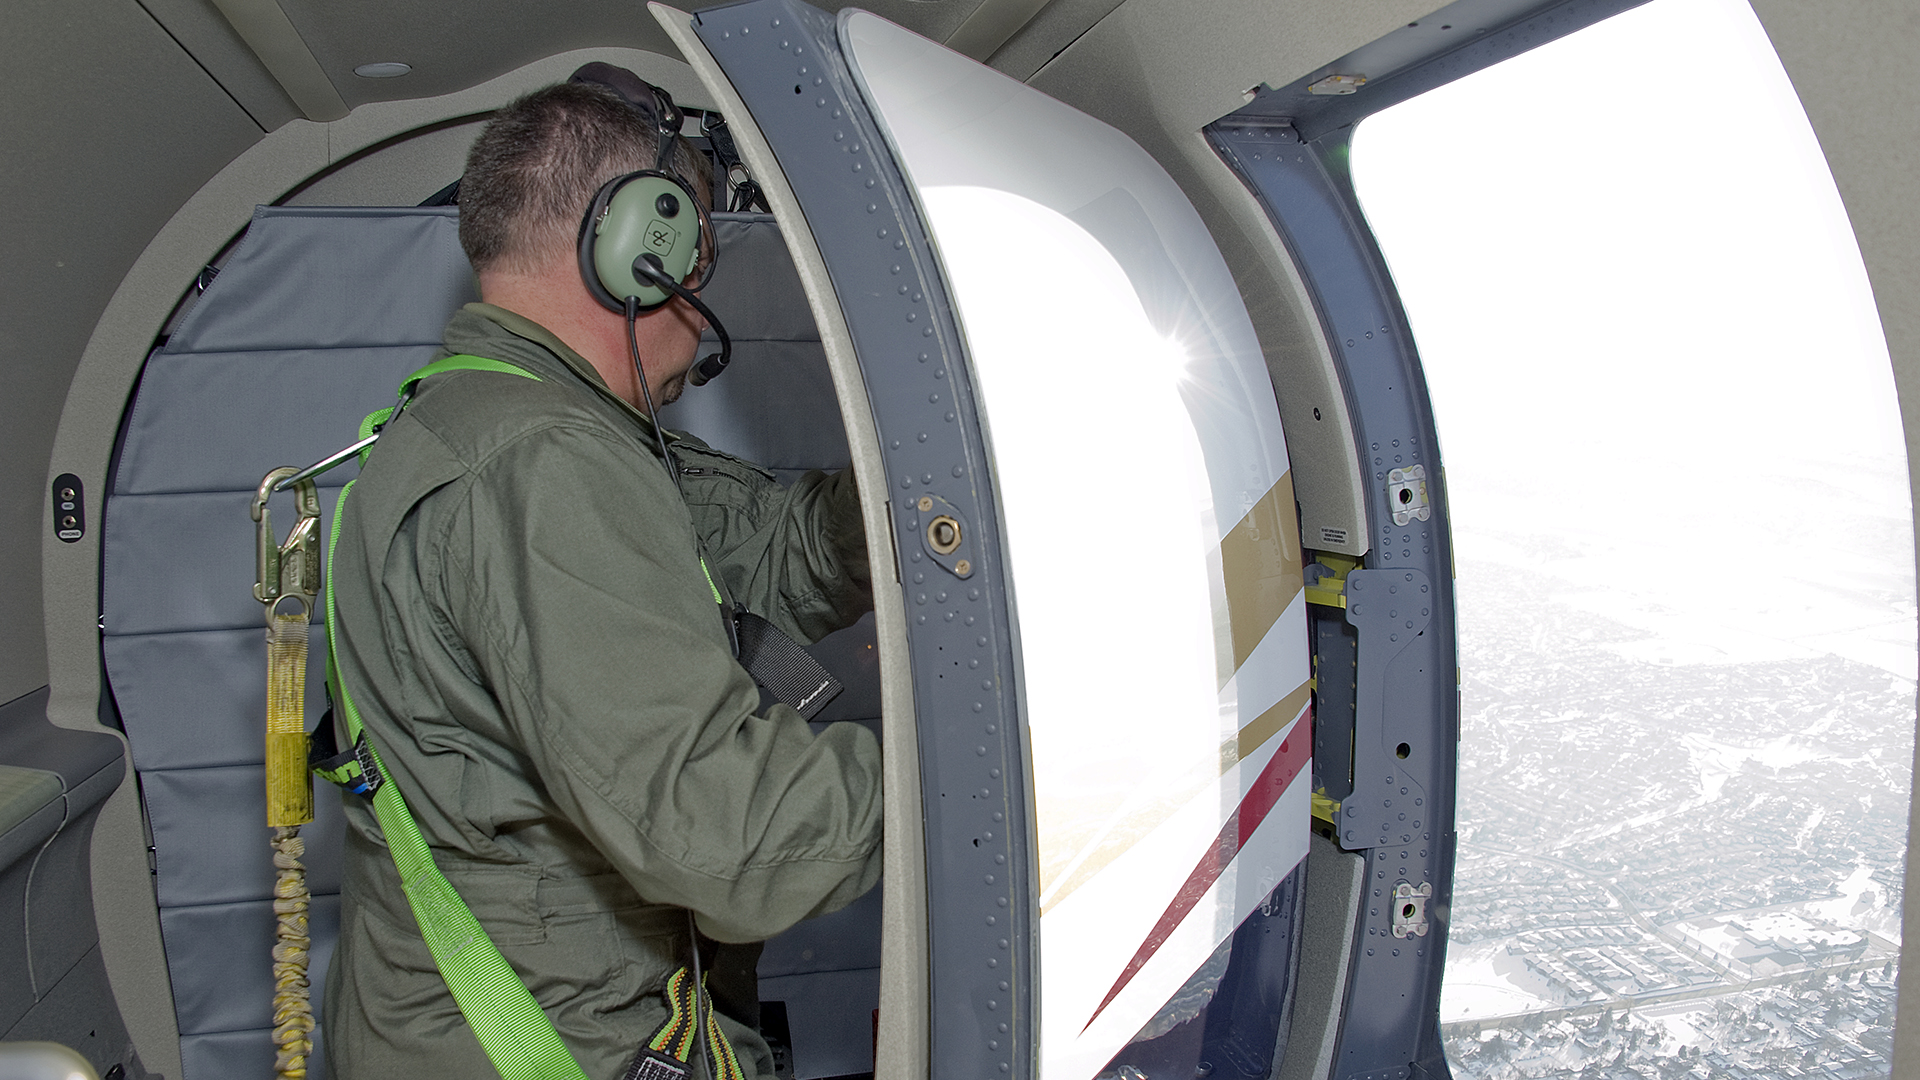 A custom air-operable aircraft door